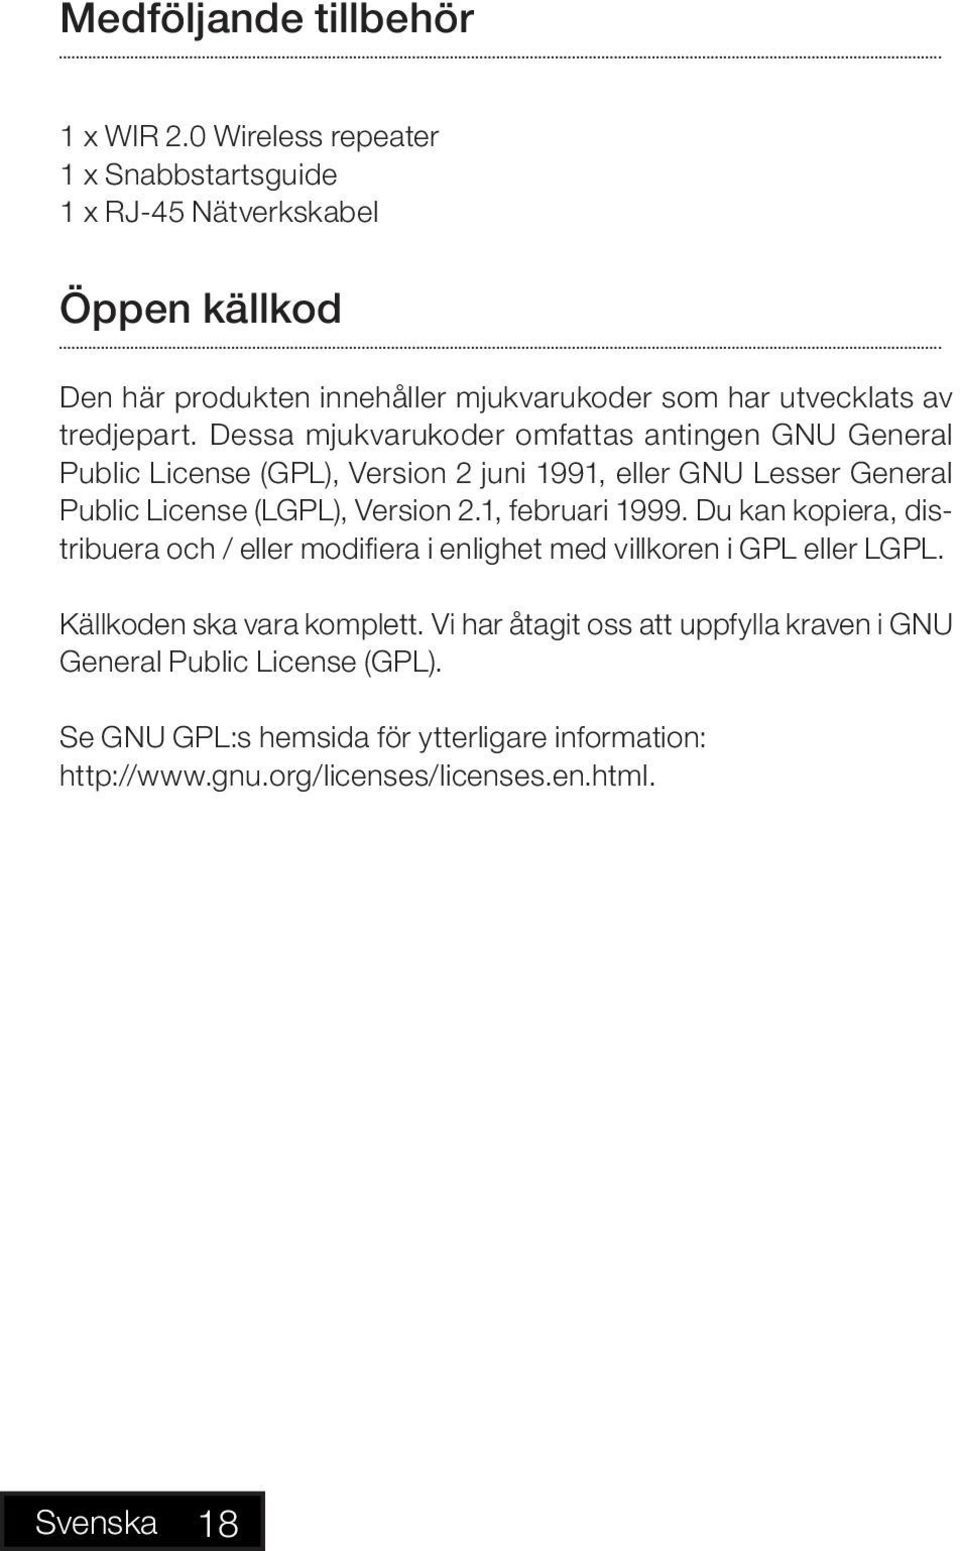 Dessa mjukvarukoder omfattas antingen GNU General Public License (GPL), Version 2 juni 1991, eller GNU Lesser General Public License (LGPL), Version 2.